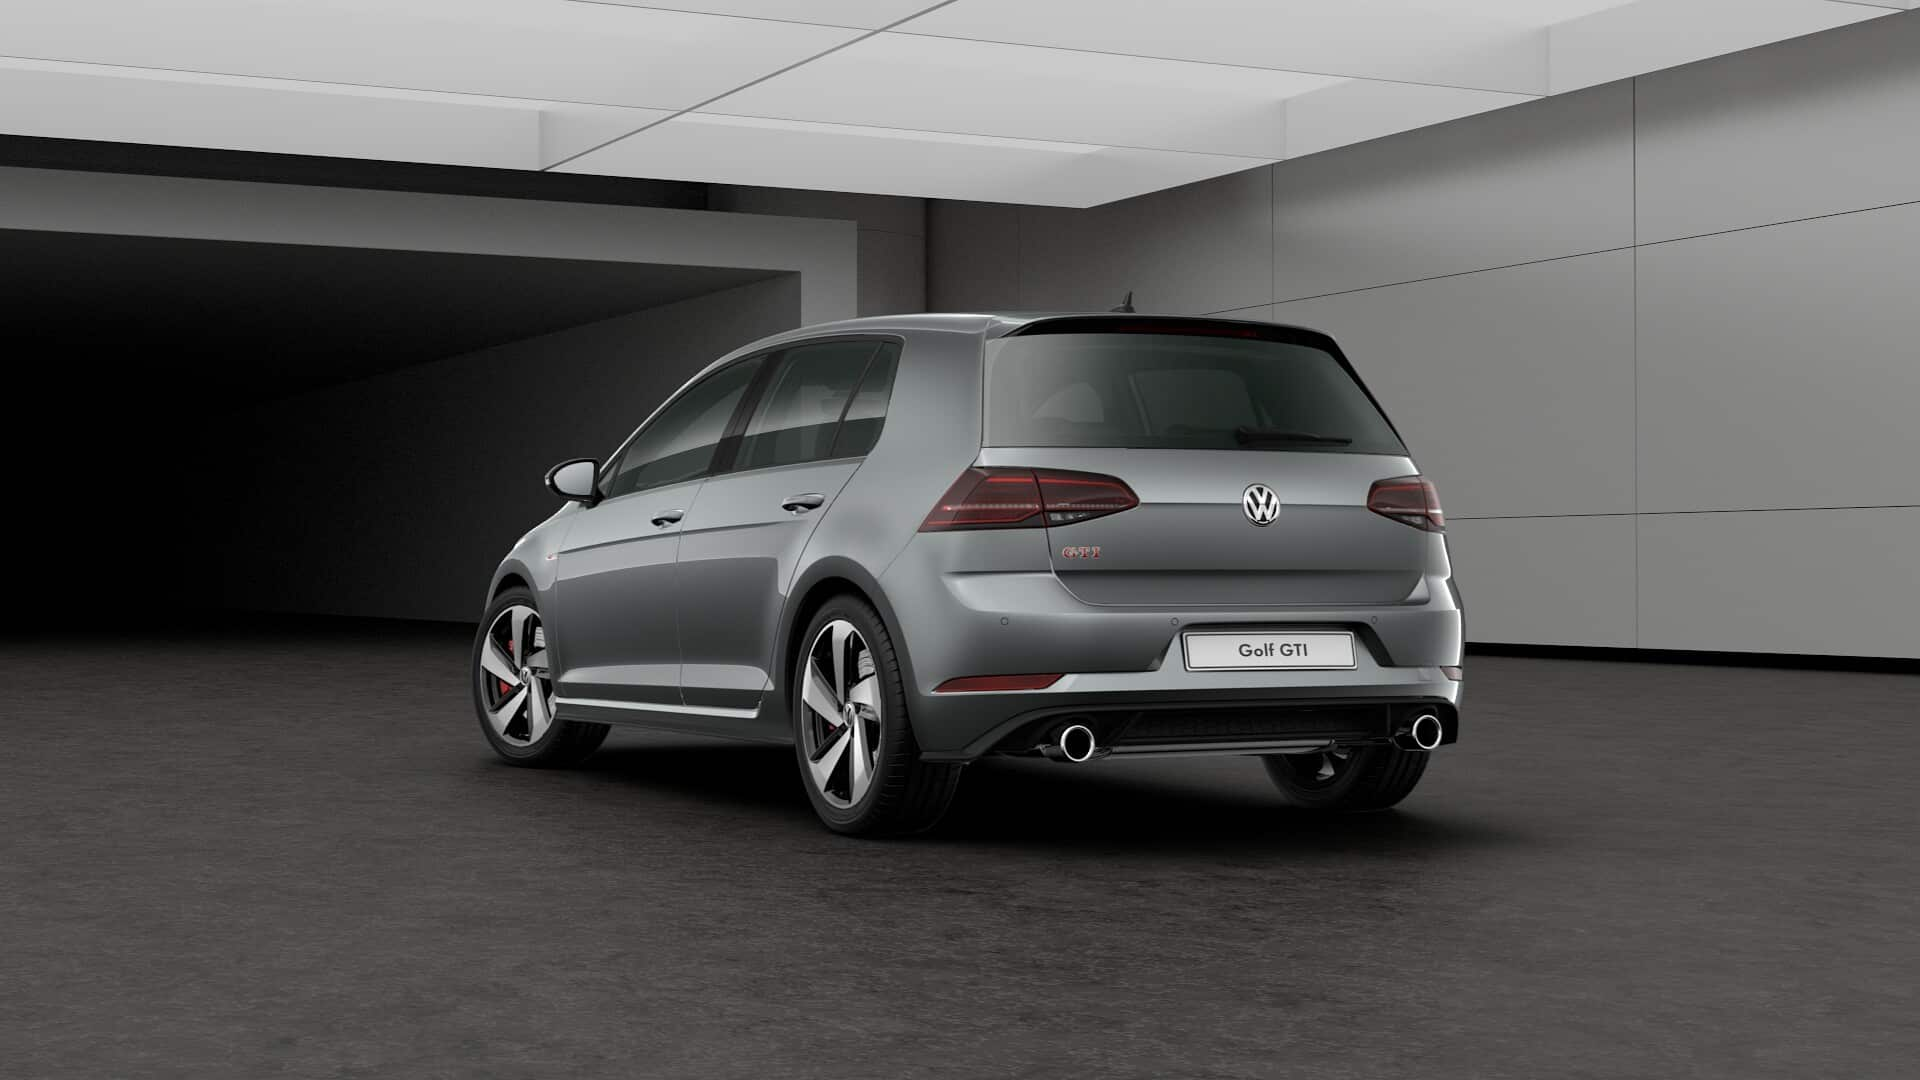 volkswagen introduce el golf gti performance con 245 cv. Black Bedroom Furniture Sets. Home Design Ideas